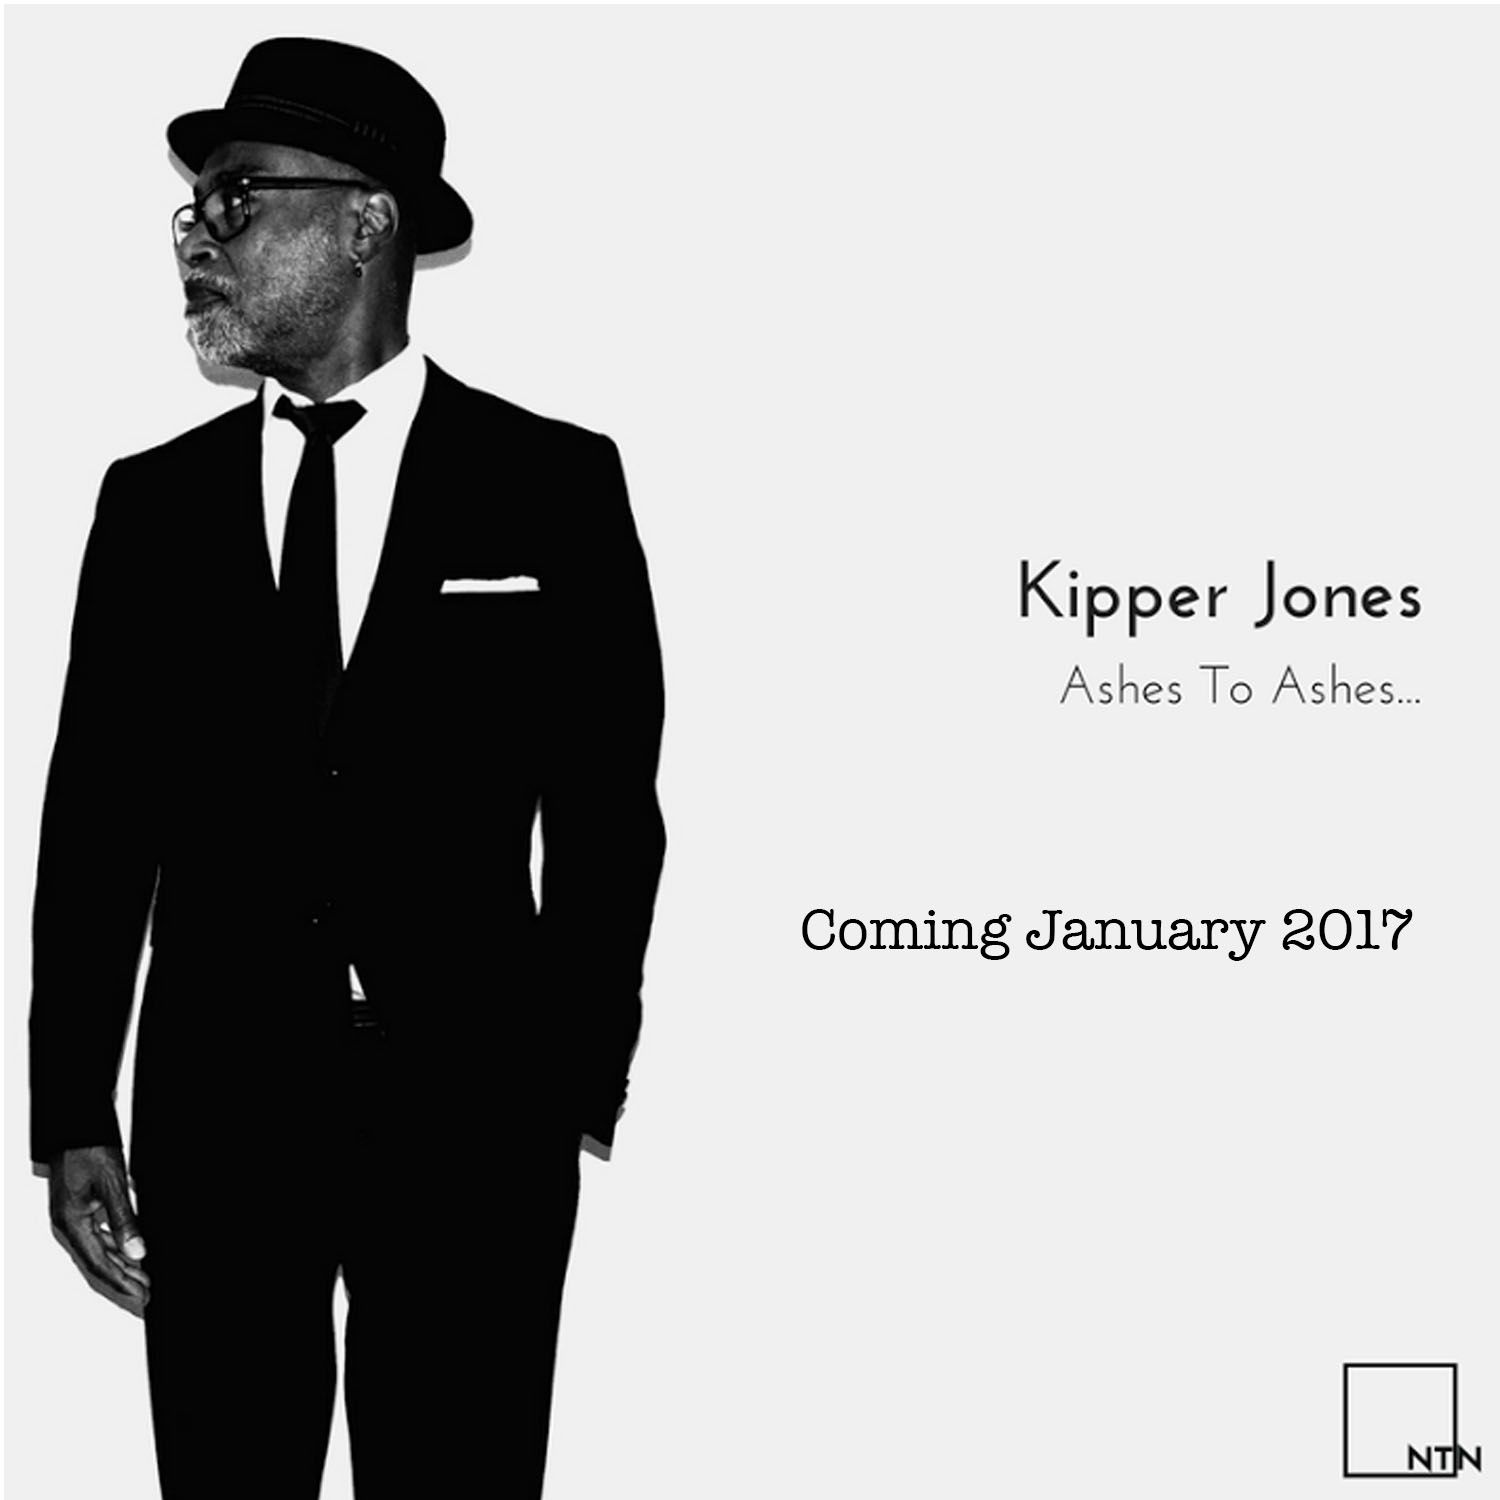 Kipper Jones Ashes To Ashes Cover